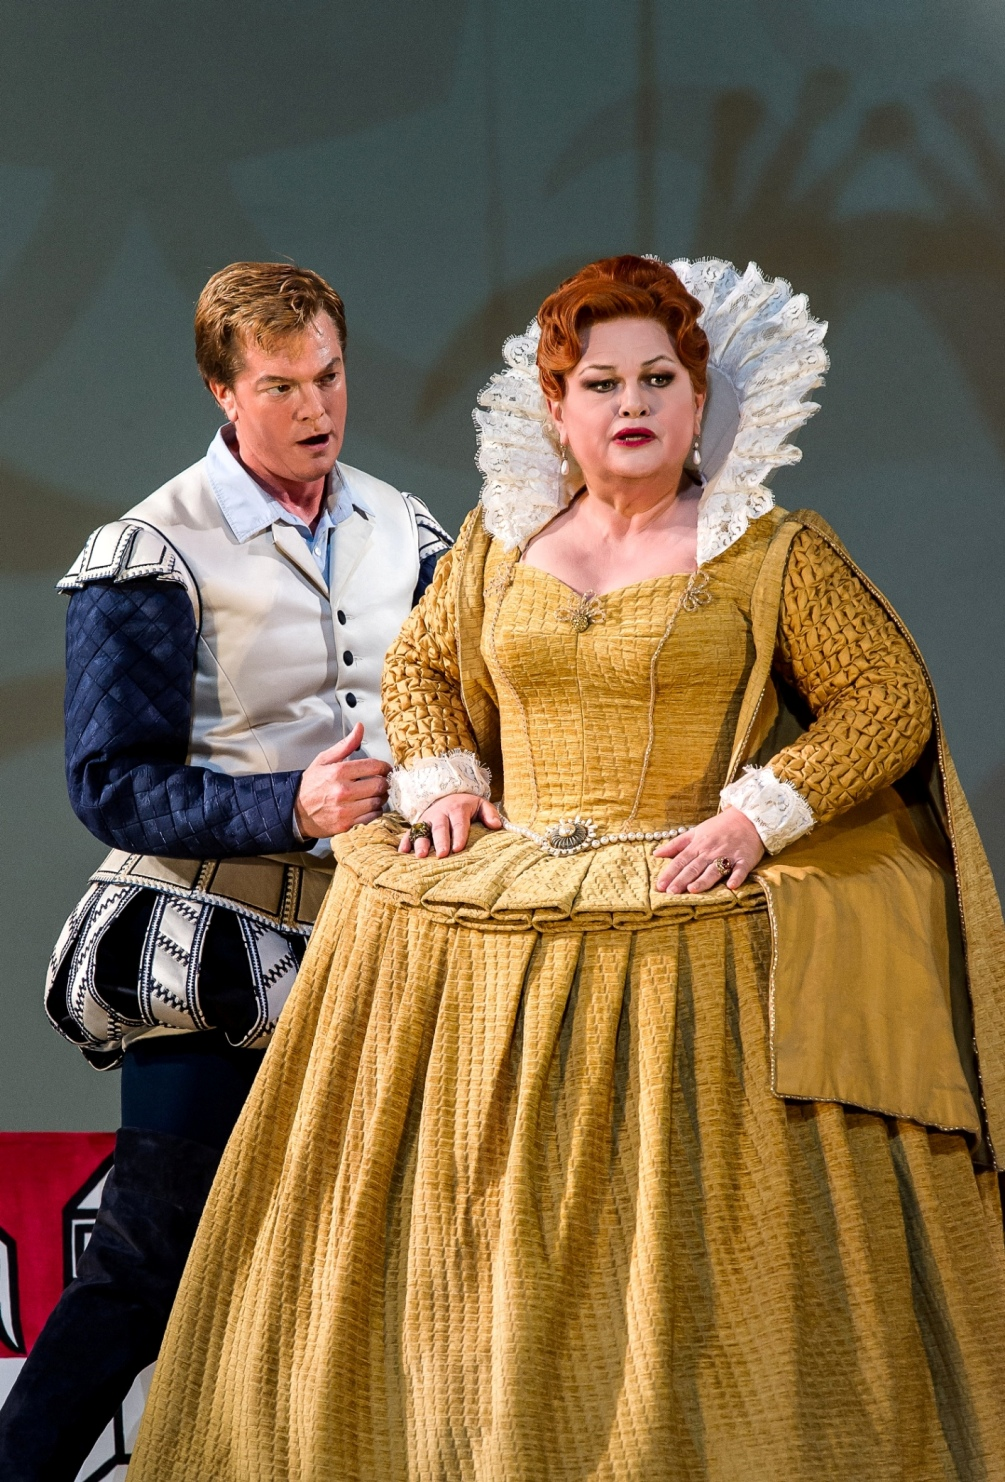 Toby Spence and Susan Bullock in the Royal Opera Gloriana